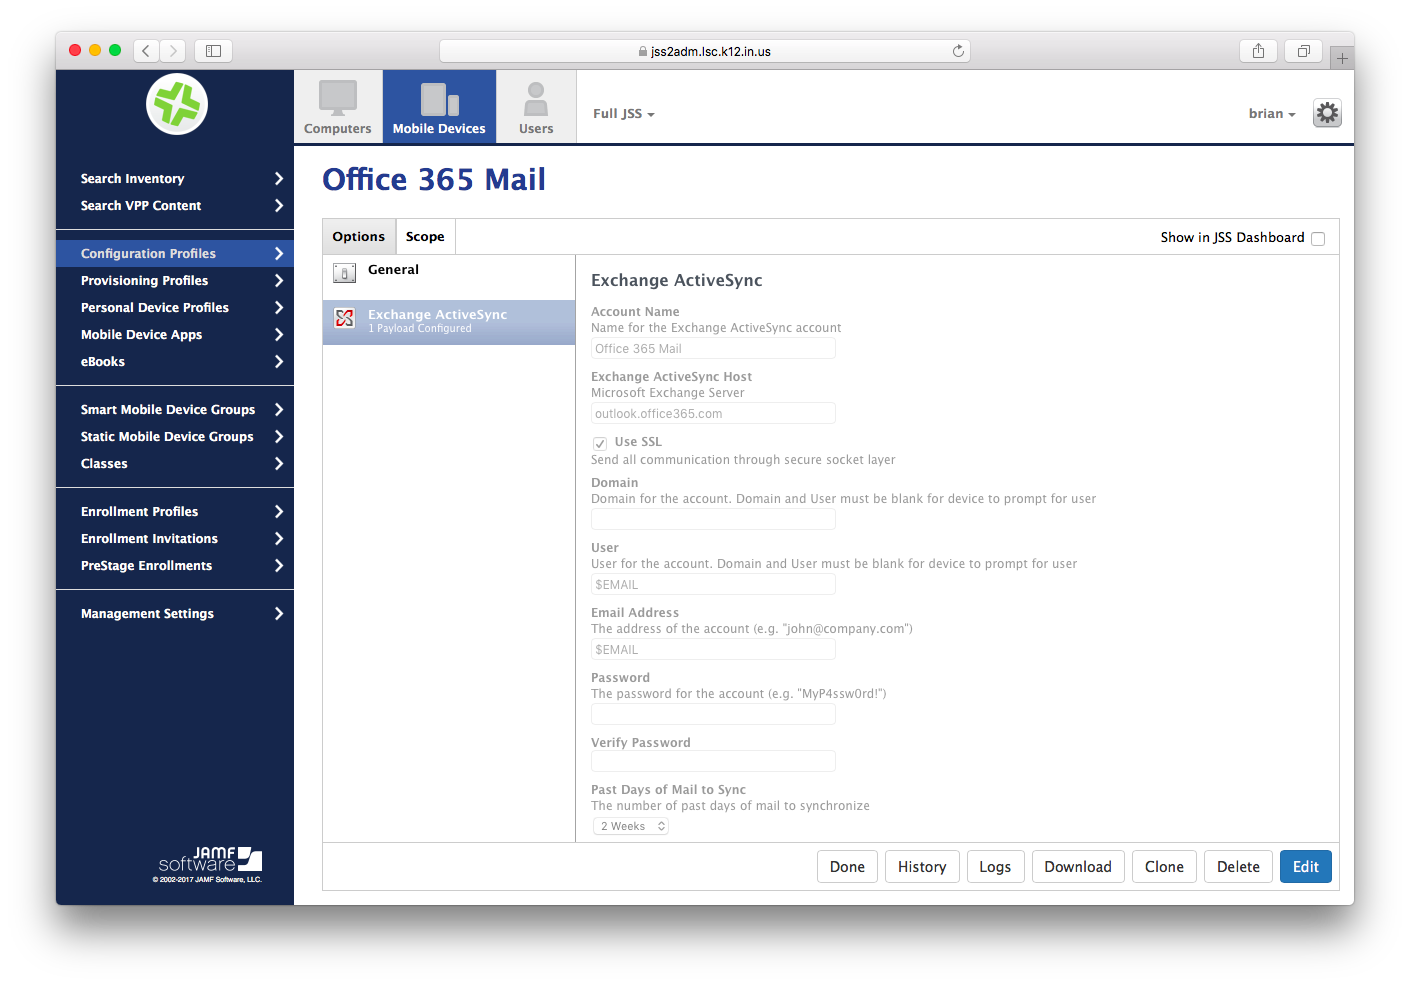 Mail Management iOS (Office 365 Email) | Discussion | Jamf